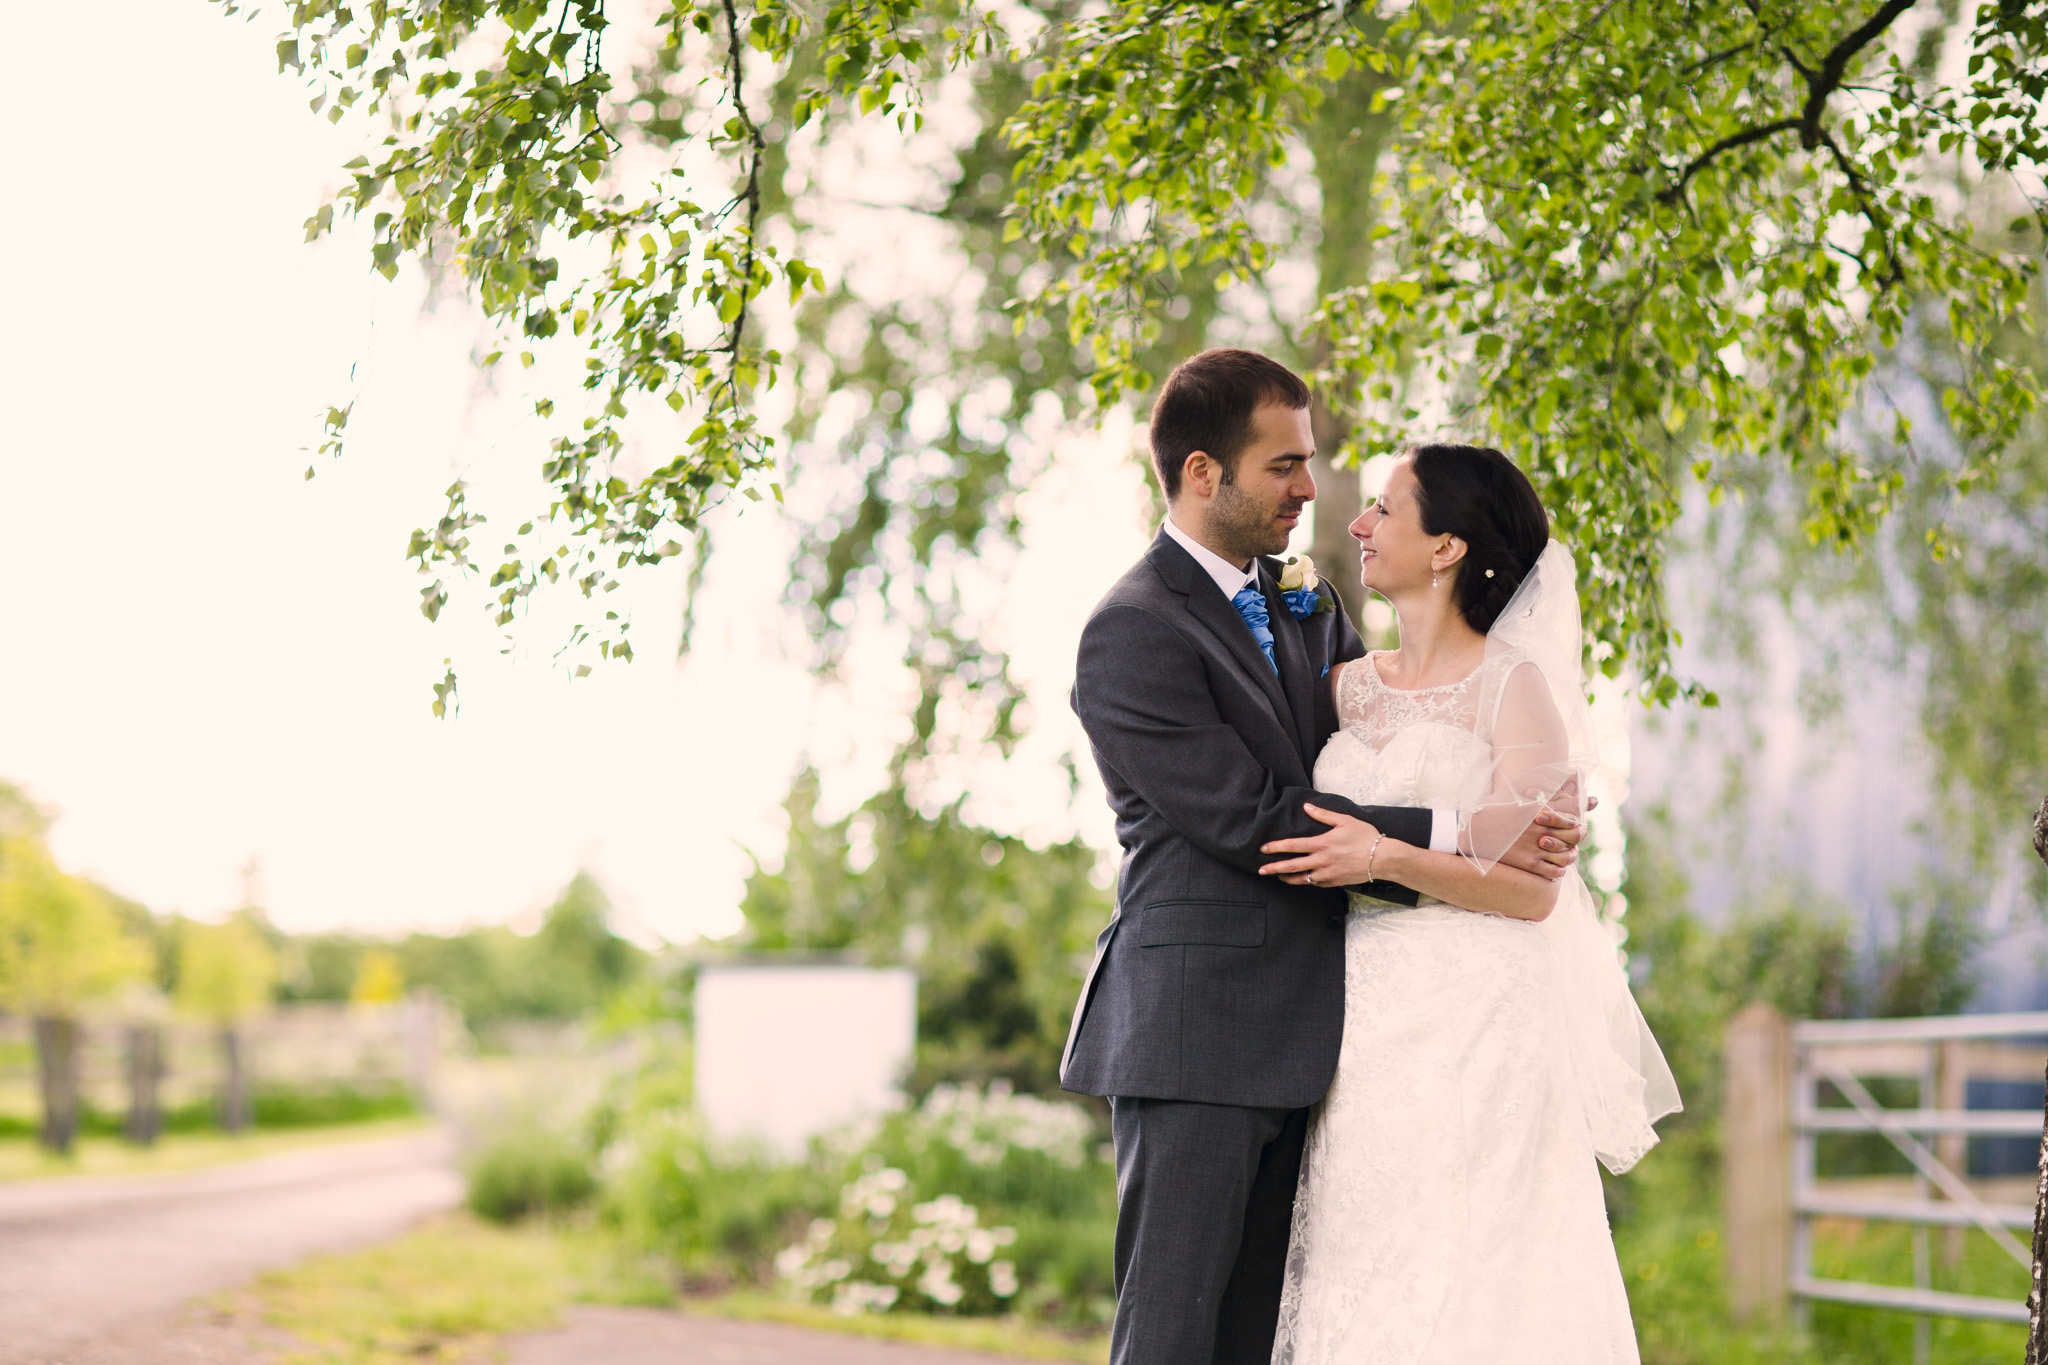 Mark_Barnes_Northern_Ireland_Wedding_Photography_Jack_and_Claire-27.jpg